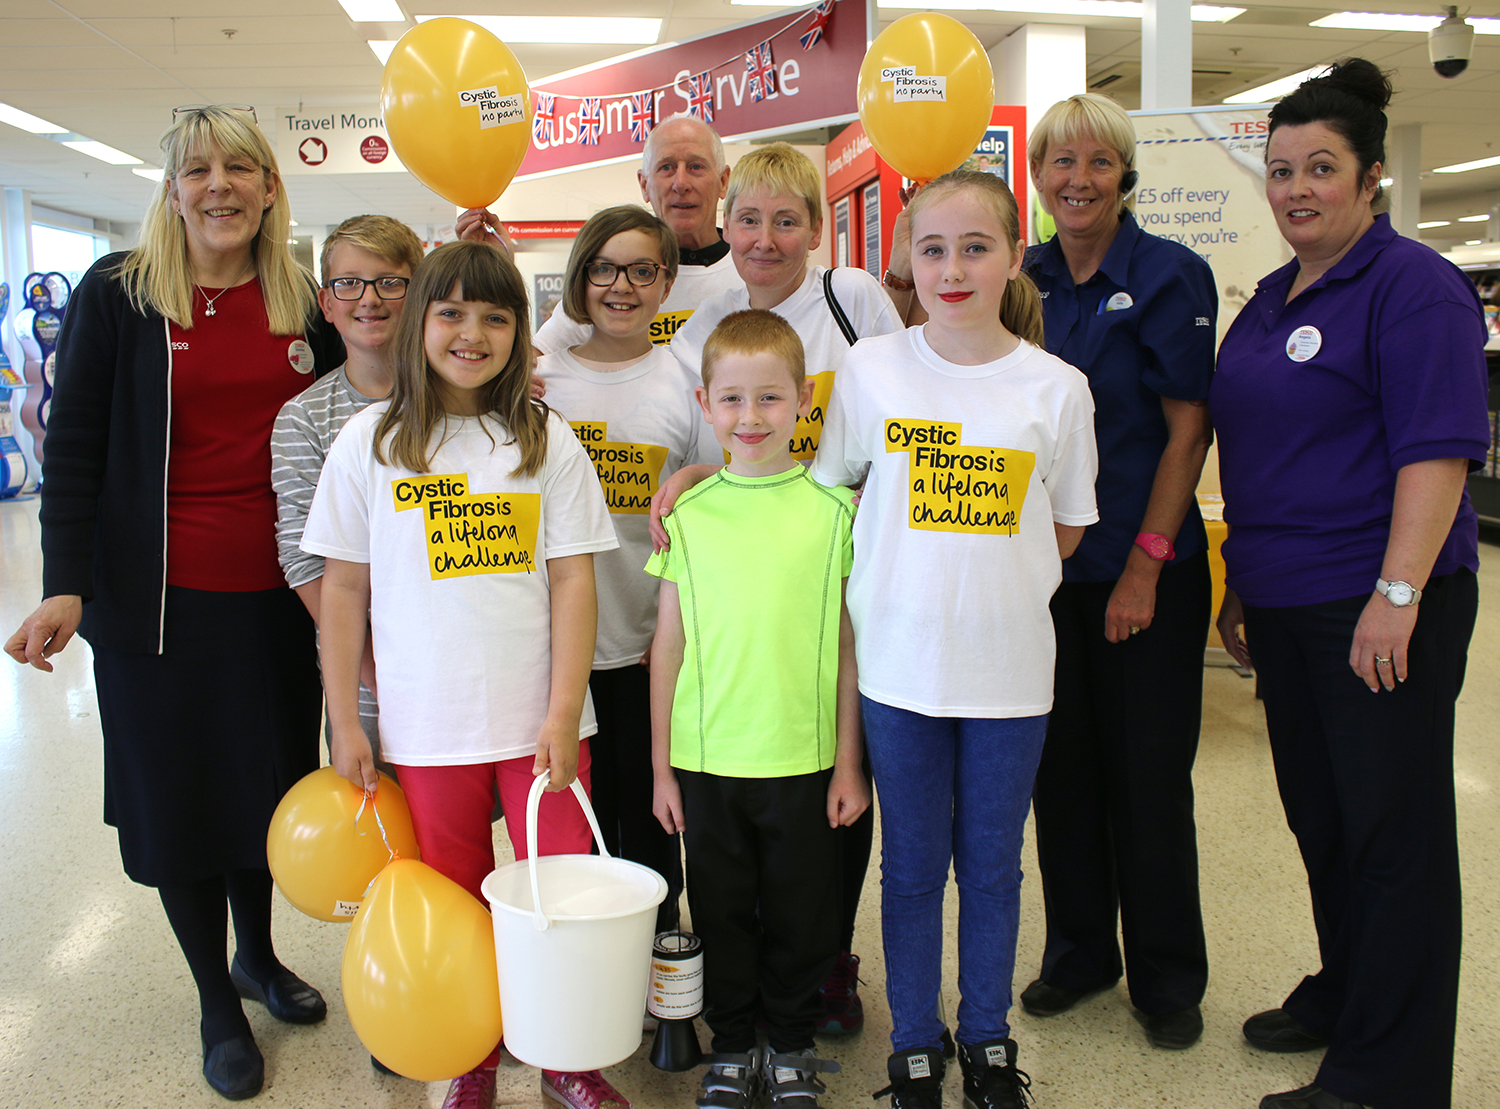 Aycliffe Tesco Help Cystic Fibrosis Charity